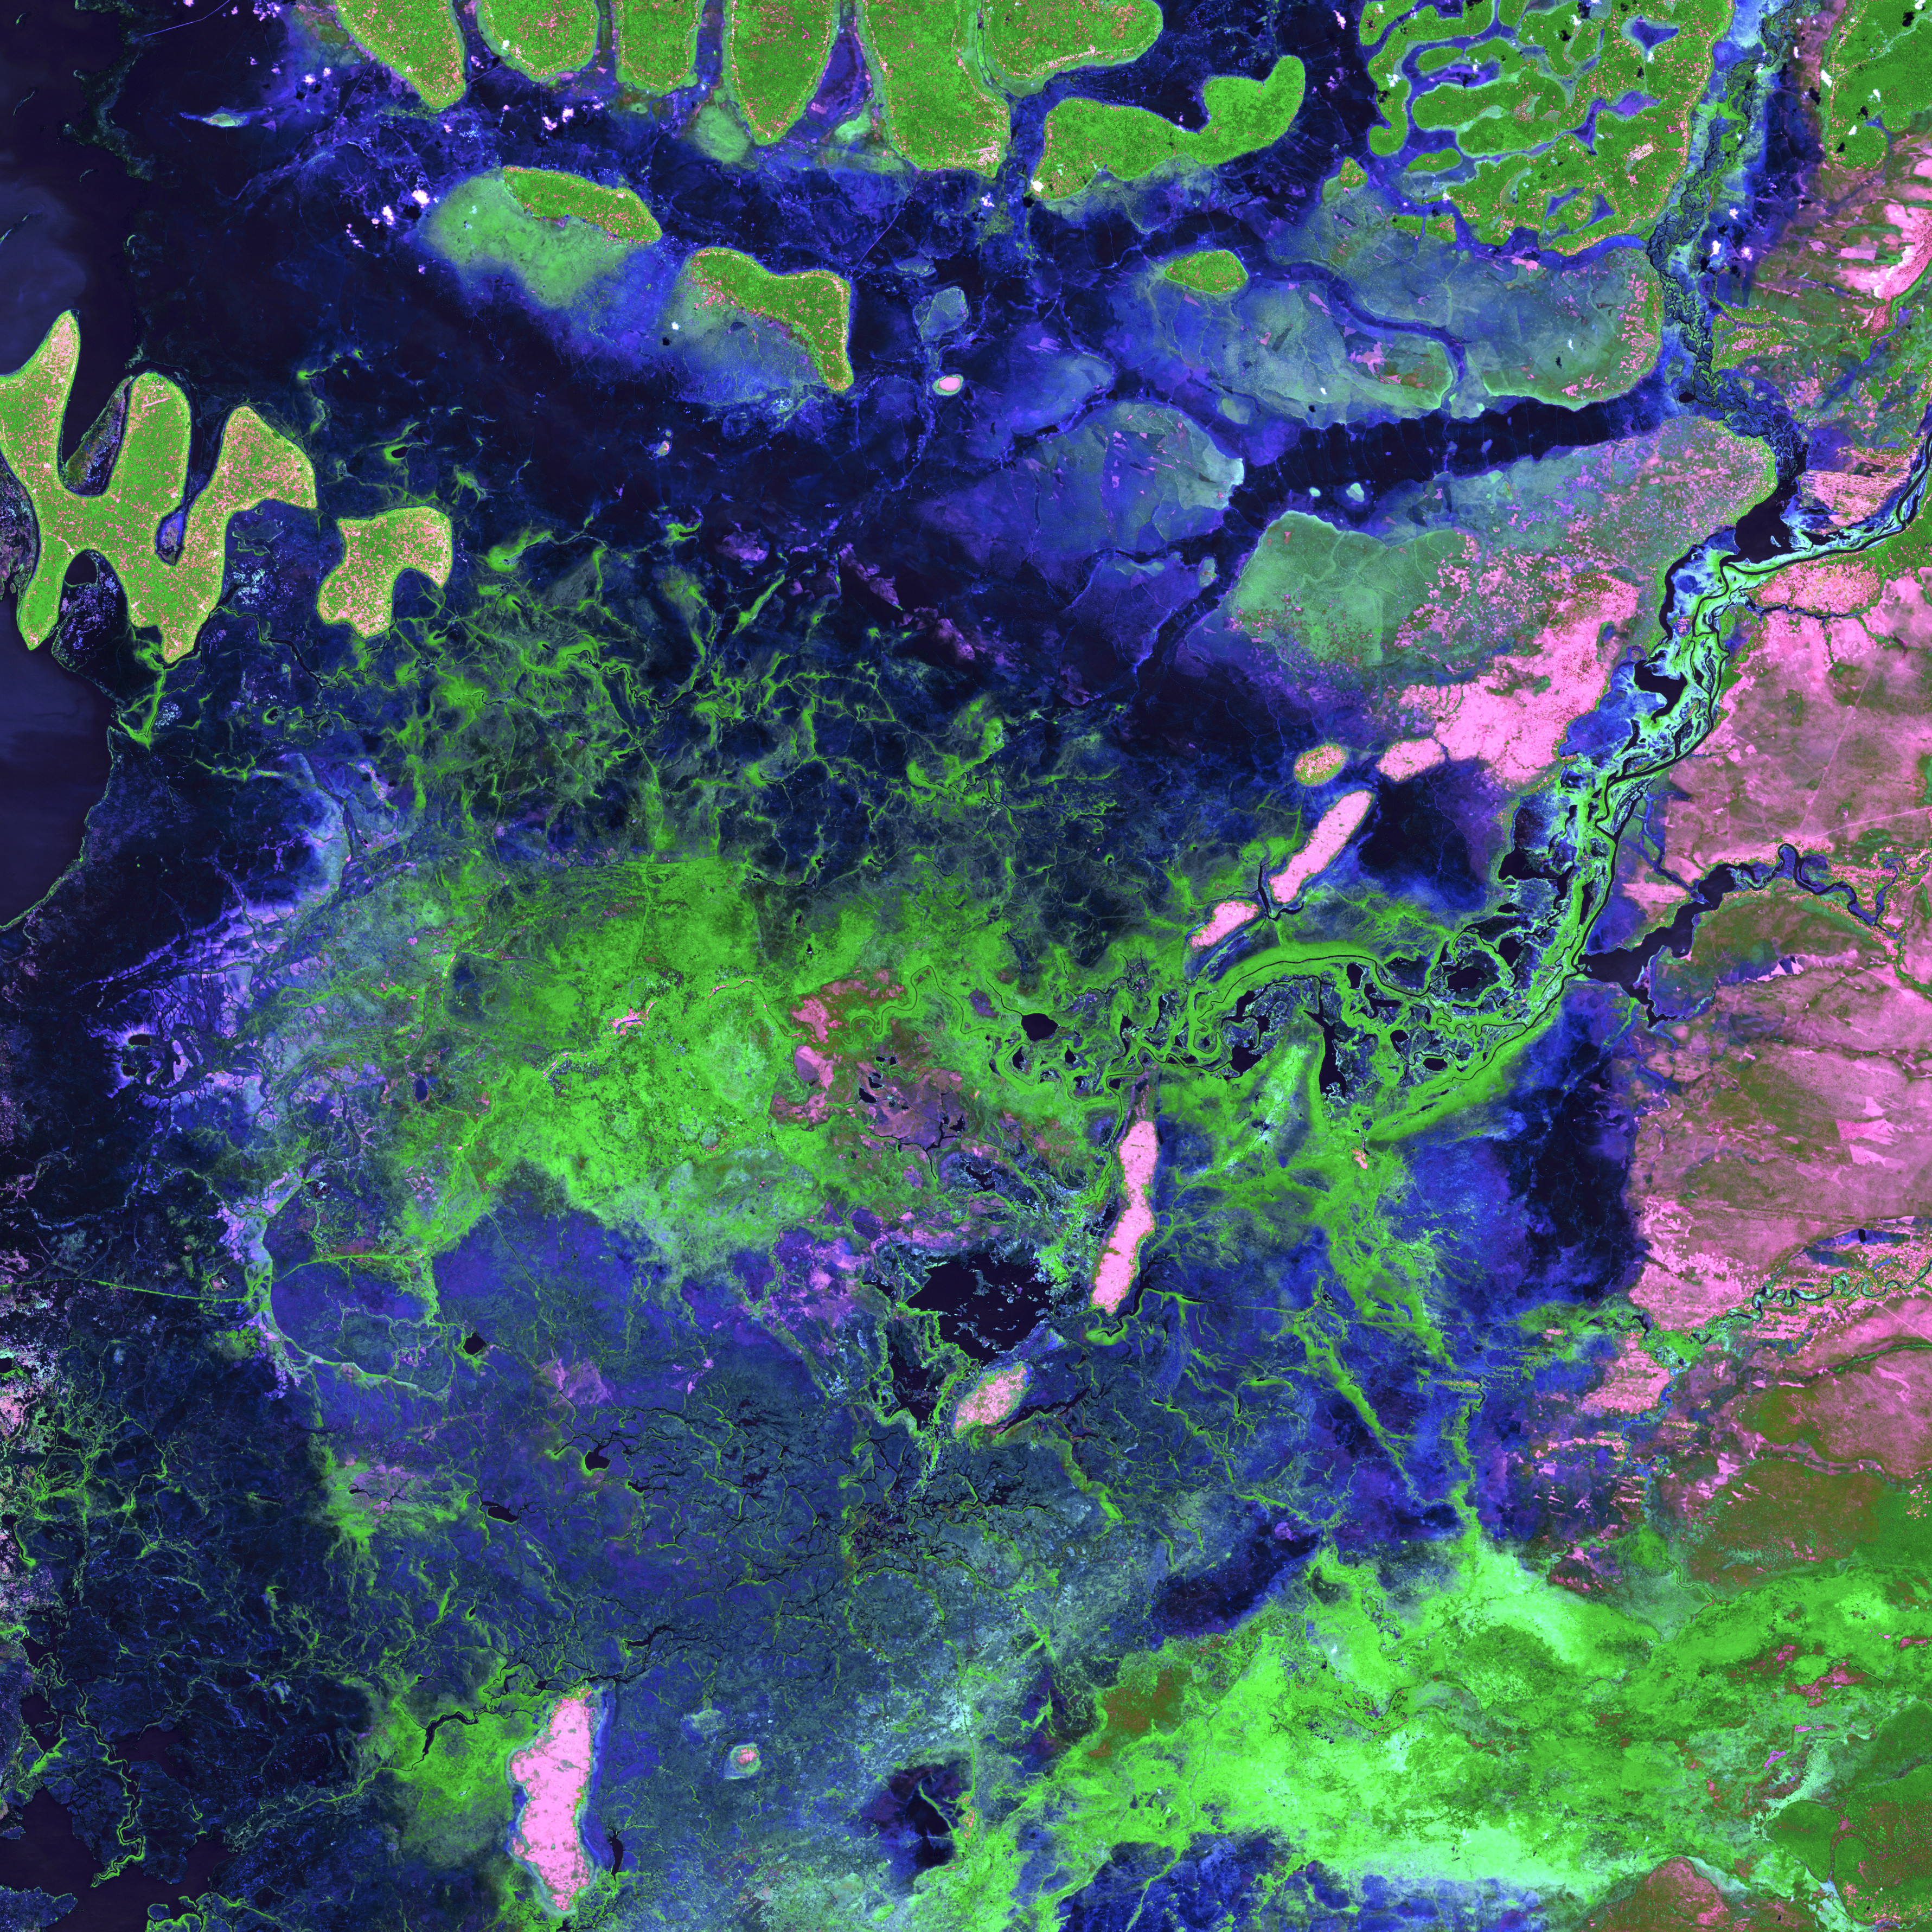 Seventeen rivers flow into the Bangweulu Wetlands in Zambia, but only one drains out. Green tendrils randomly sweep through the image, a landscape dominated by various grasslands, open water, and dense Papyrus grass and Phragmites reeds. The entire wetland covers an area about the size of Connecticut.